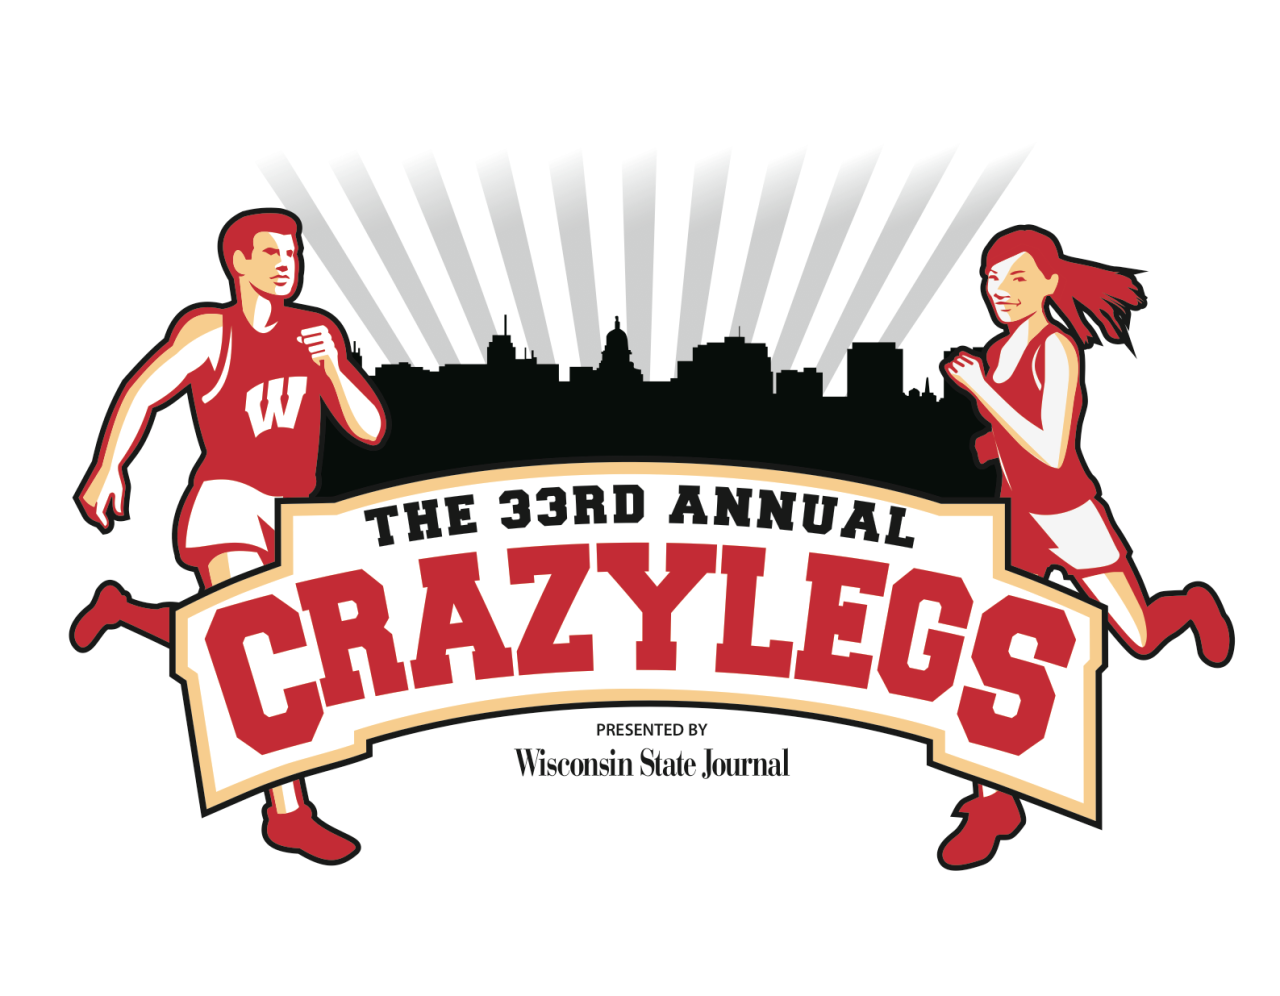 Crazylegs T-shirt Design